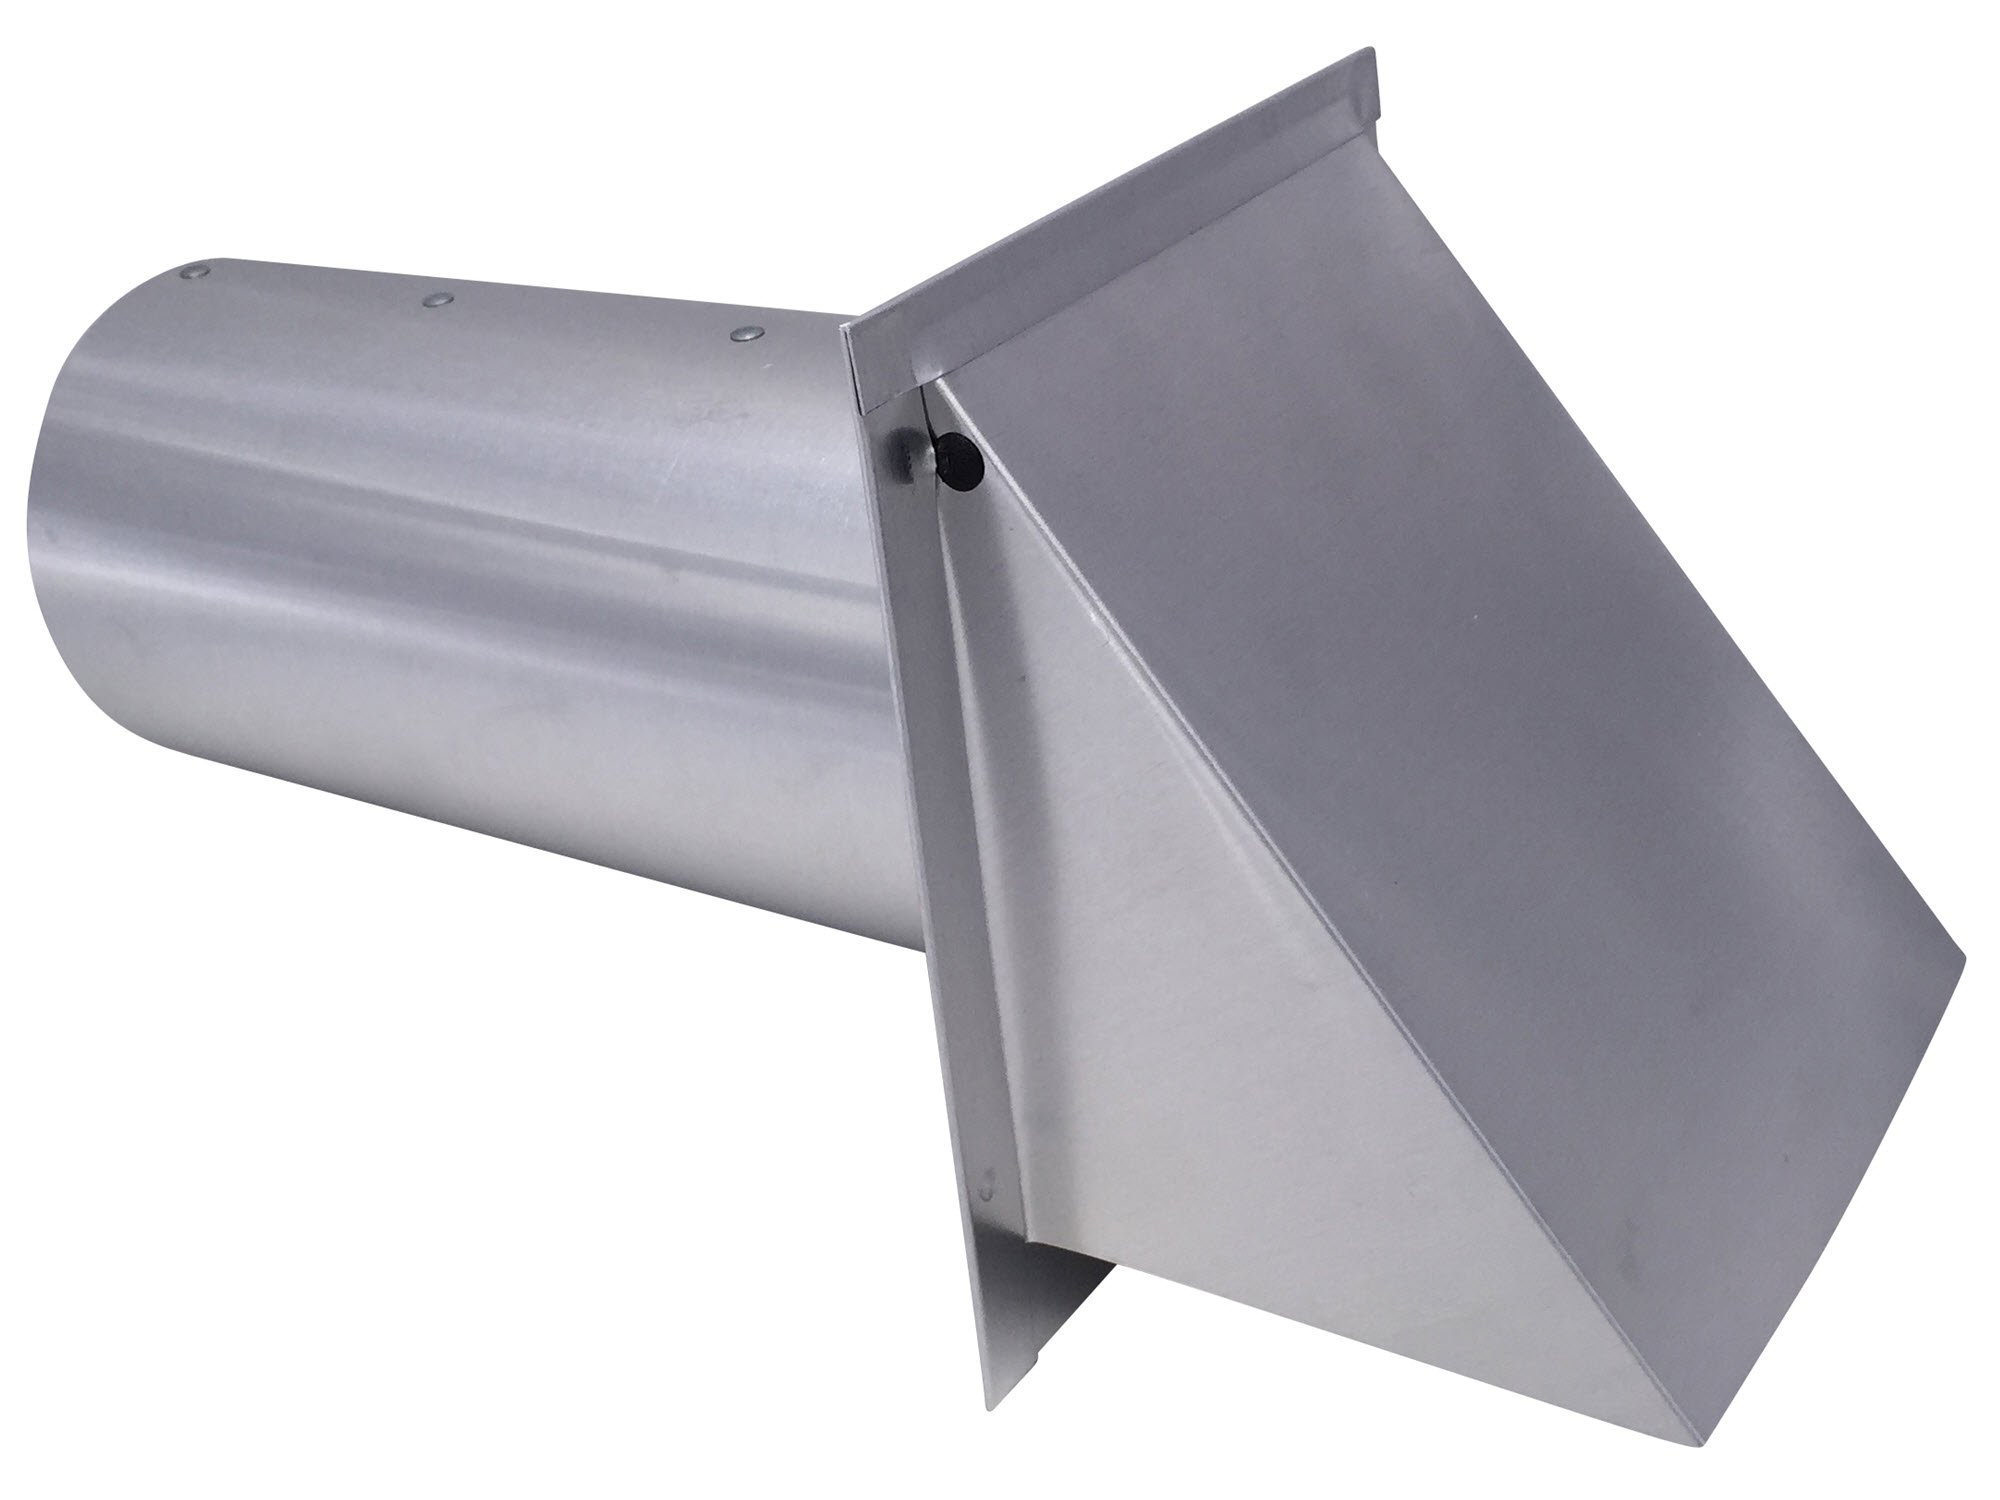 4 Inch Wall Vent Aluminum Screen Only (4 Inch Diameter) - Vent Works